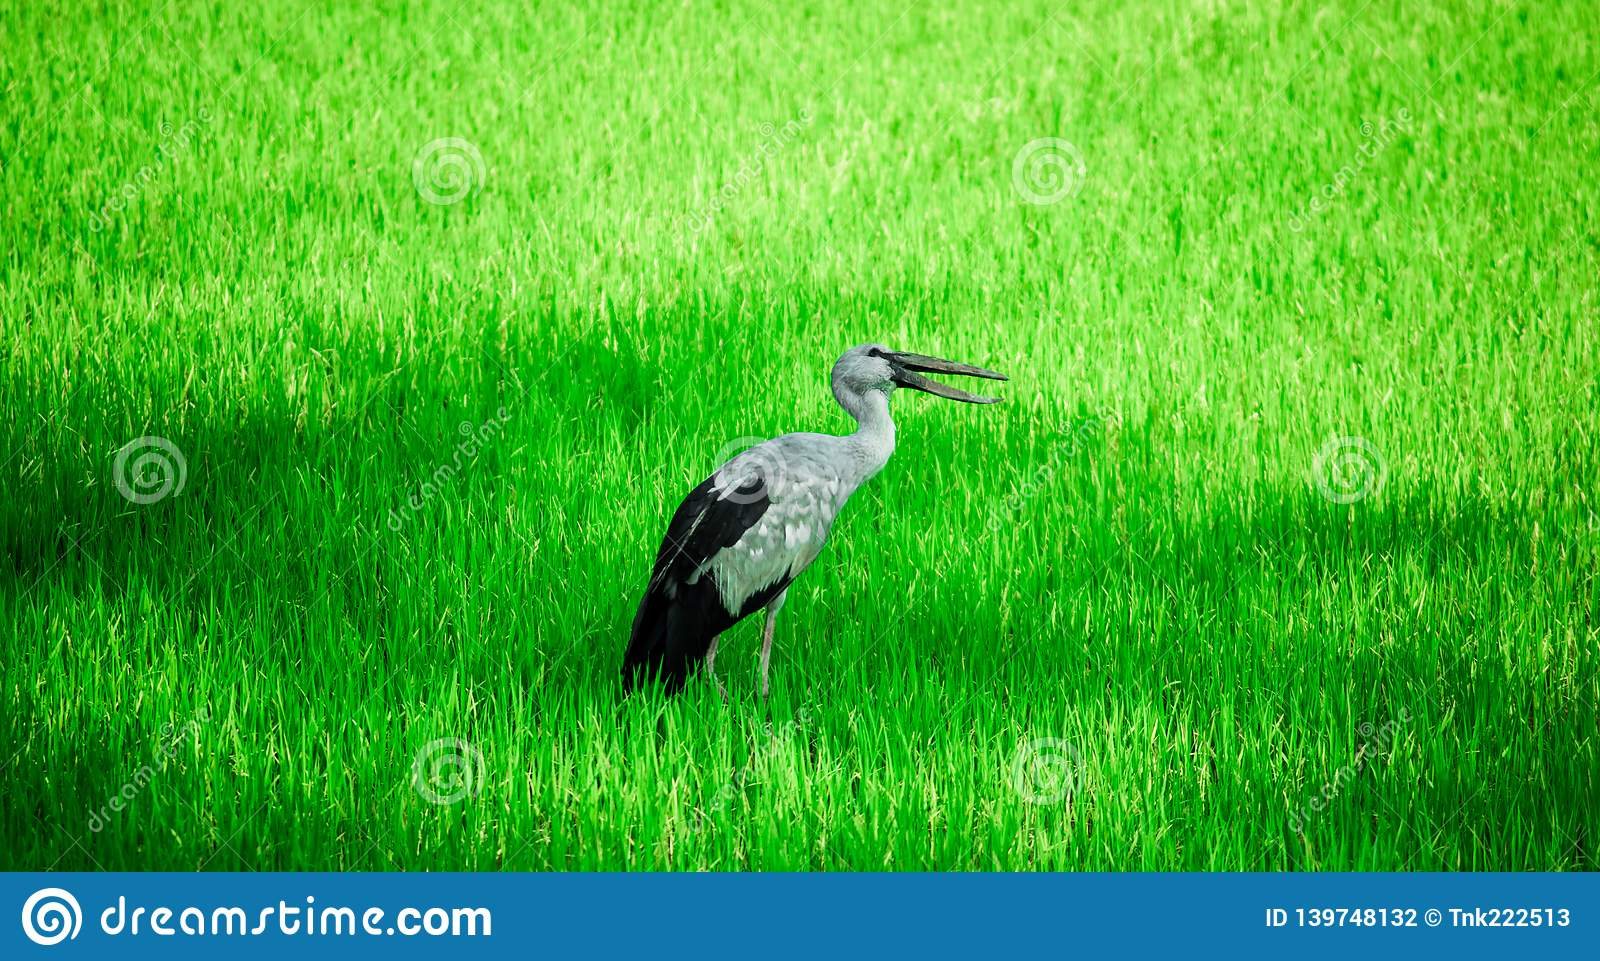 Anastomus oscitans or Asian Openbill local bird walking around the rice fields and watching for food, shell food.